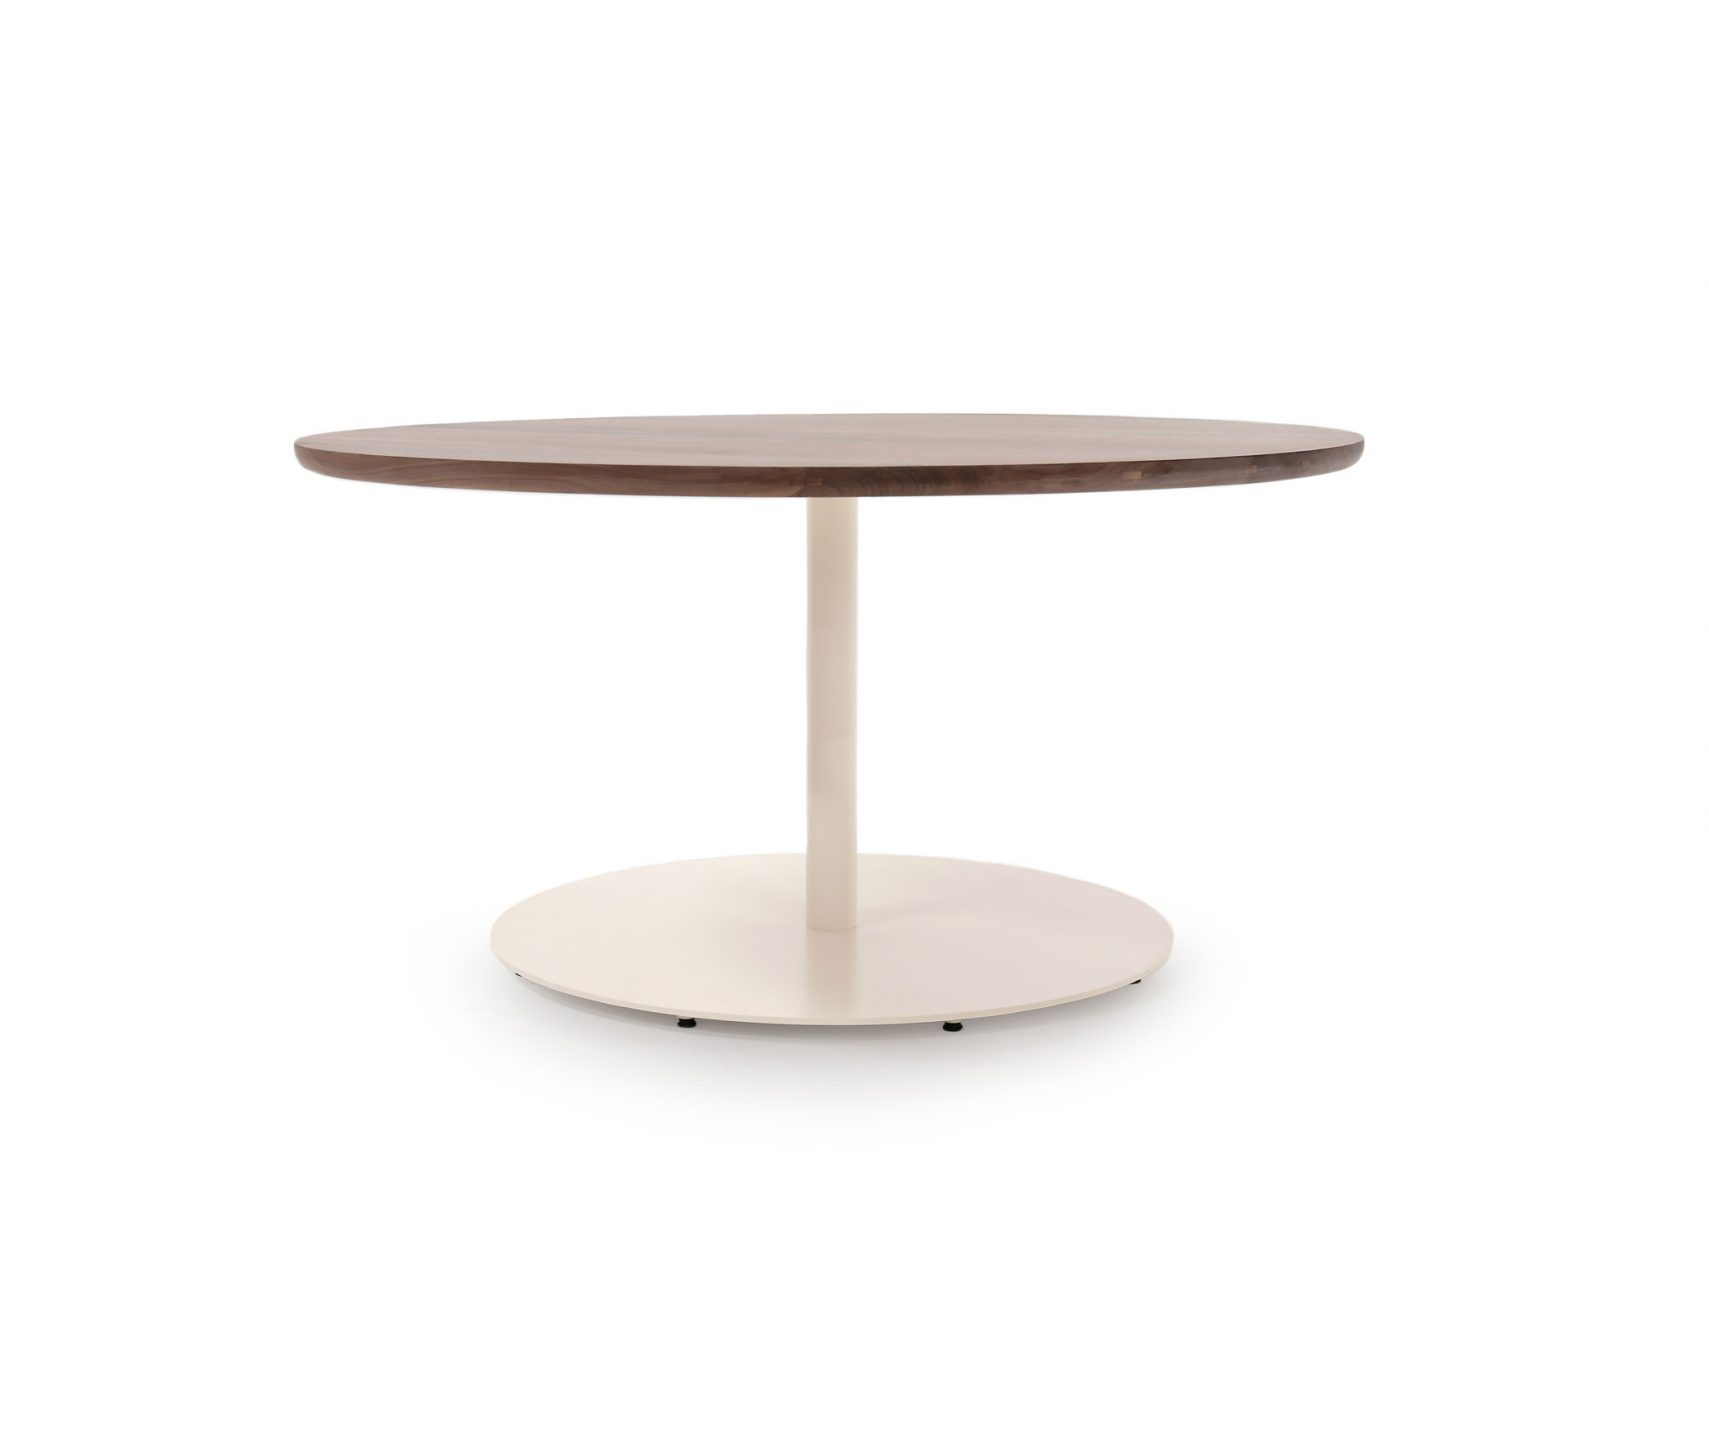 Verellen_Lisbon-60-Round-Dining-Table_int_products